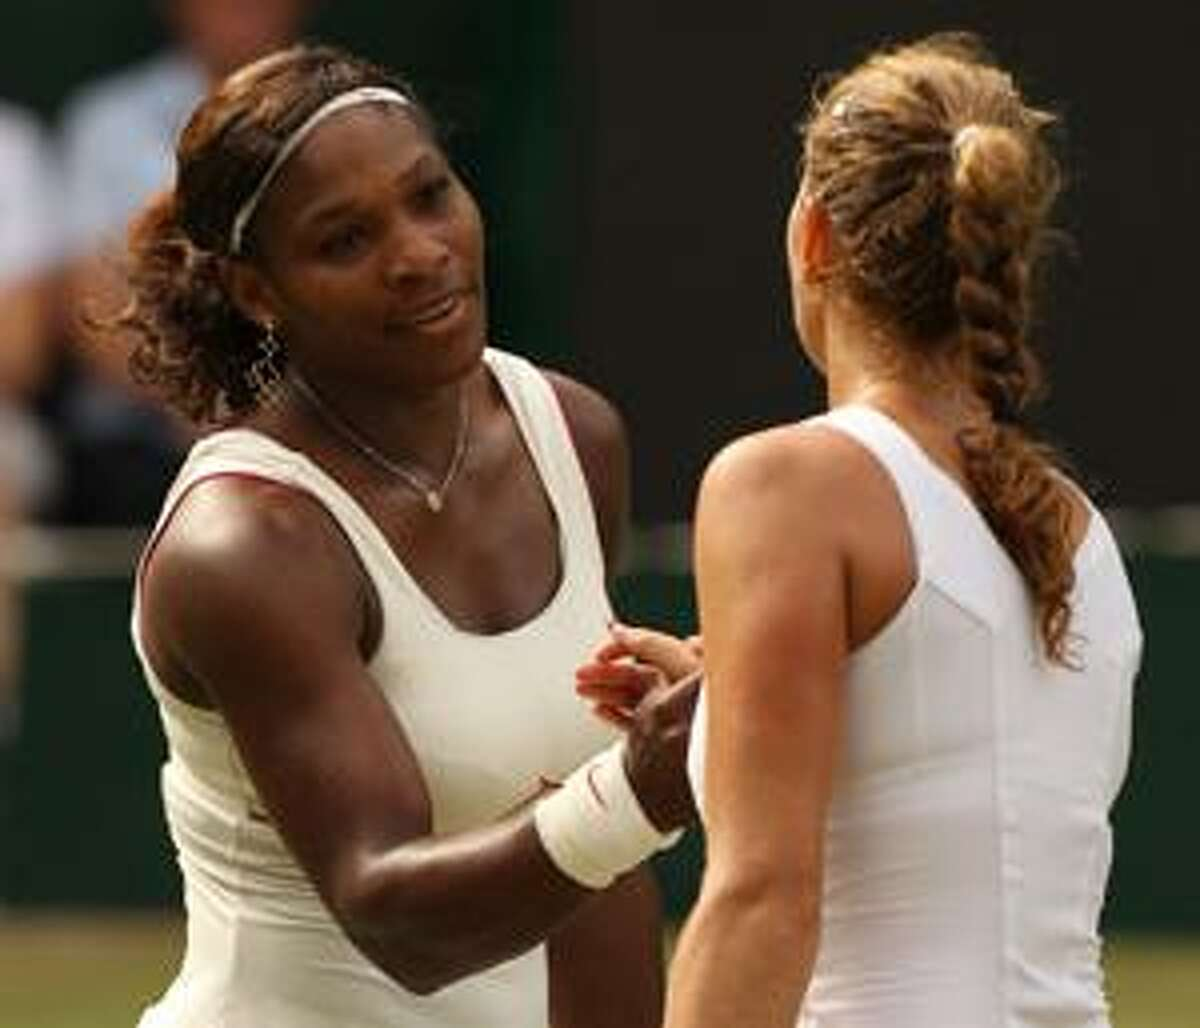 Serena Williams shakes hands with Petra Kvitova of the Czech Republic, after defeating her in their women's singles semifinal on the Centre Court at the All England Lawn Tennis Championships at Wimbledon, Thursday. (AP Photo/Jon Super)